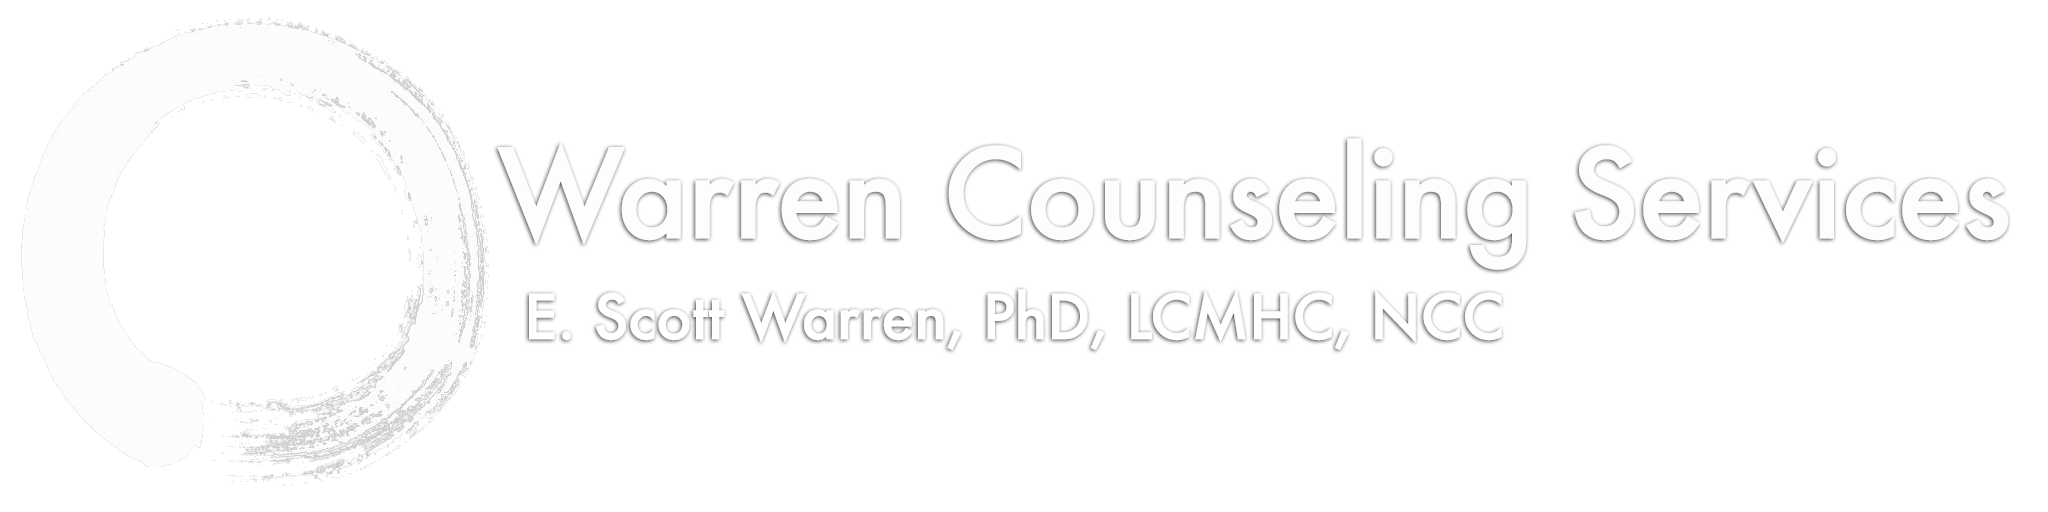 Warren Counseling Services